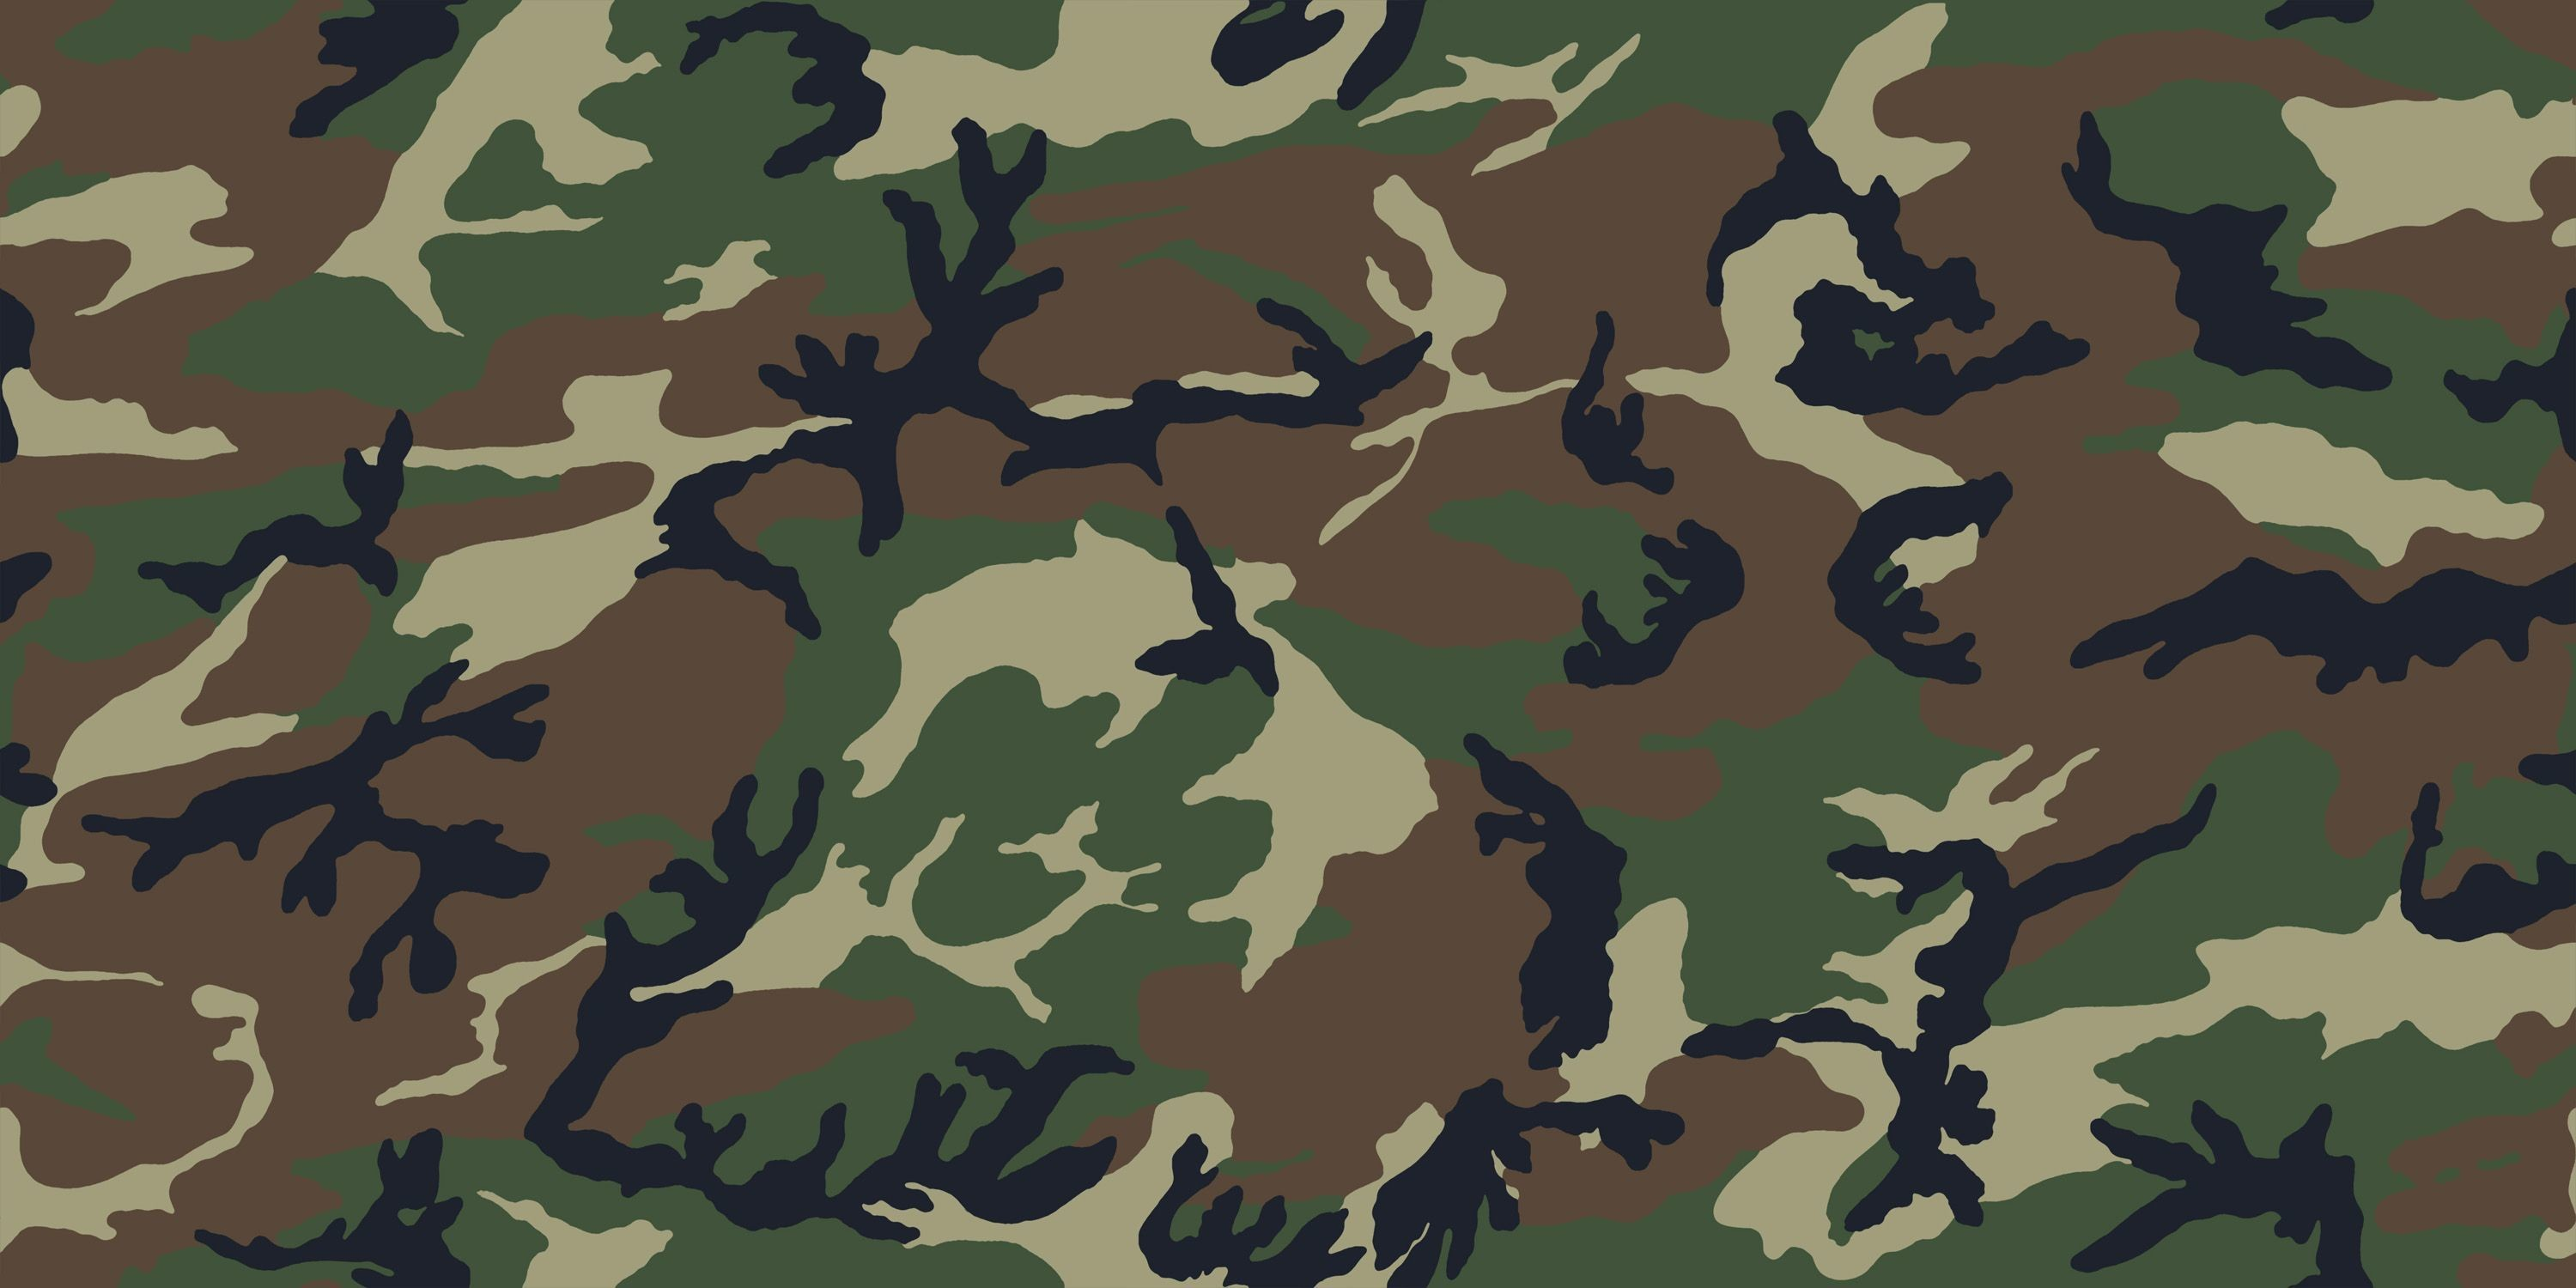 Res: 3000x1500, Camo Wallpaper for Phone HD Wallpapers Pinterest Best Camo